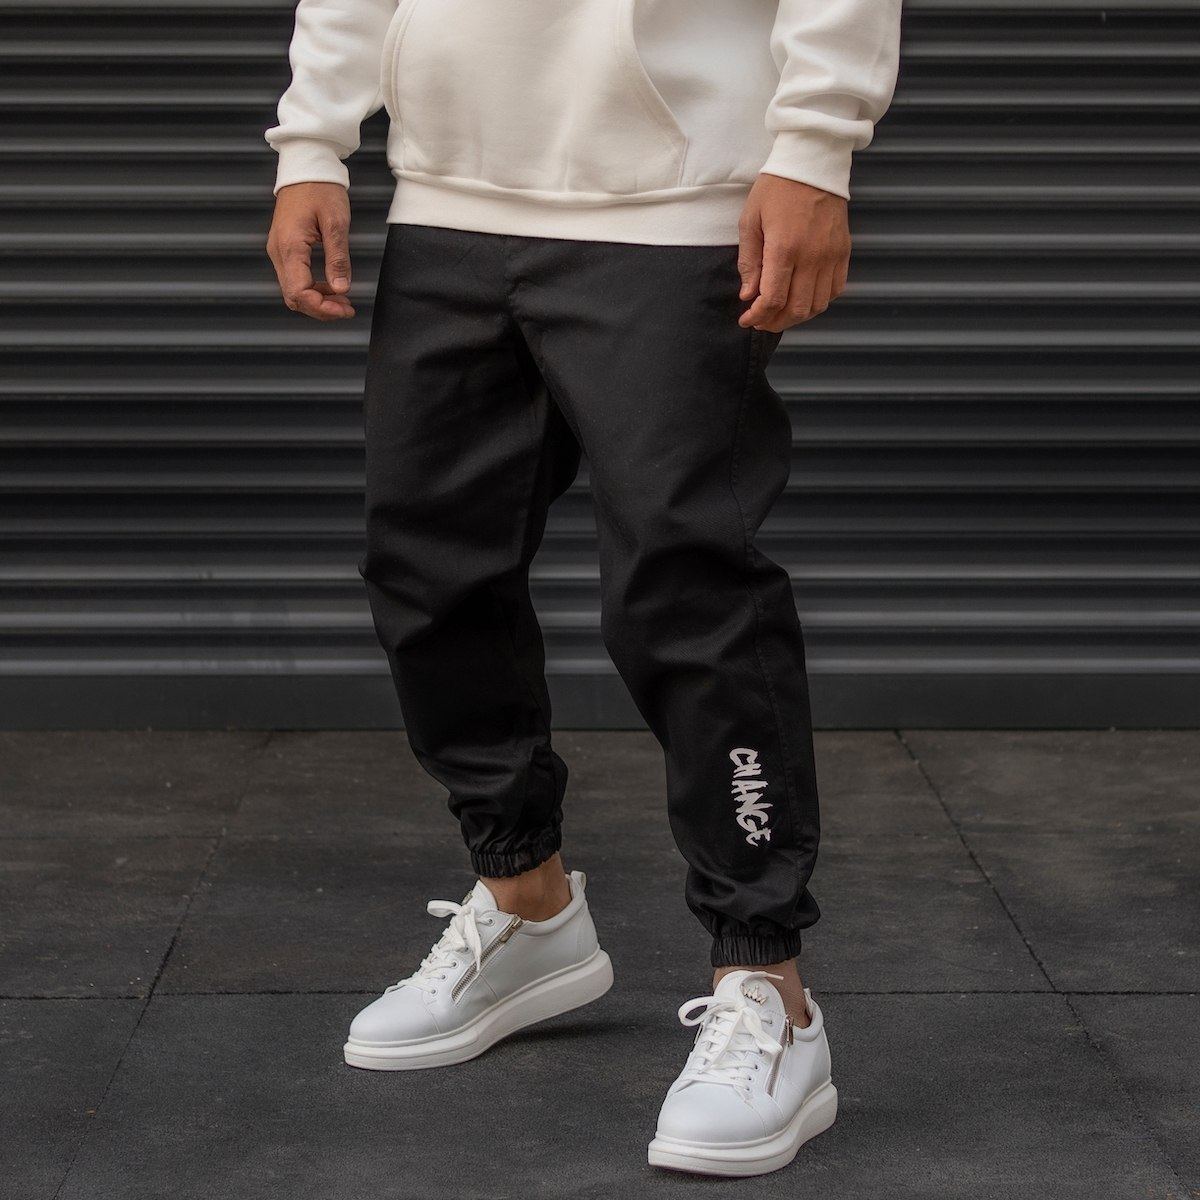 Men's Joggers With Text...